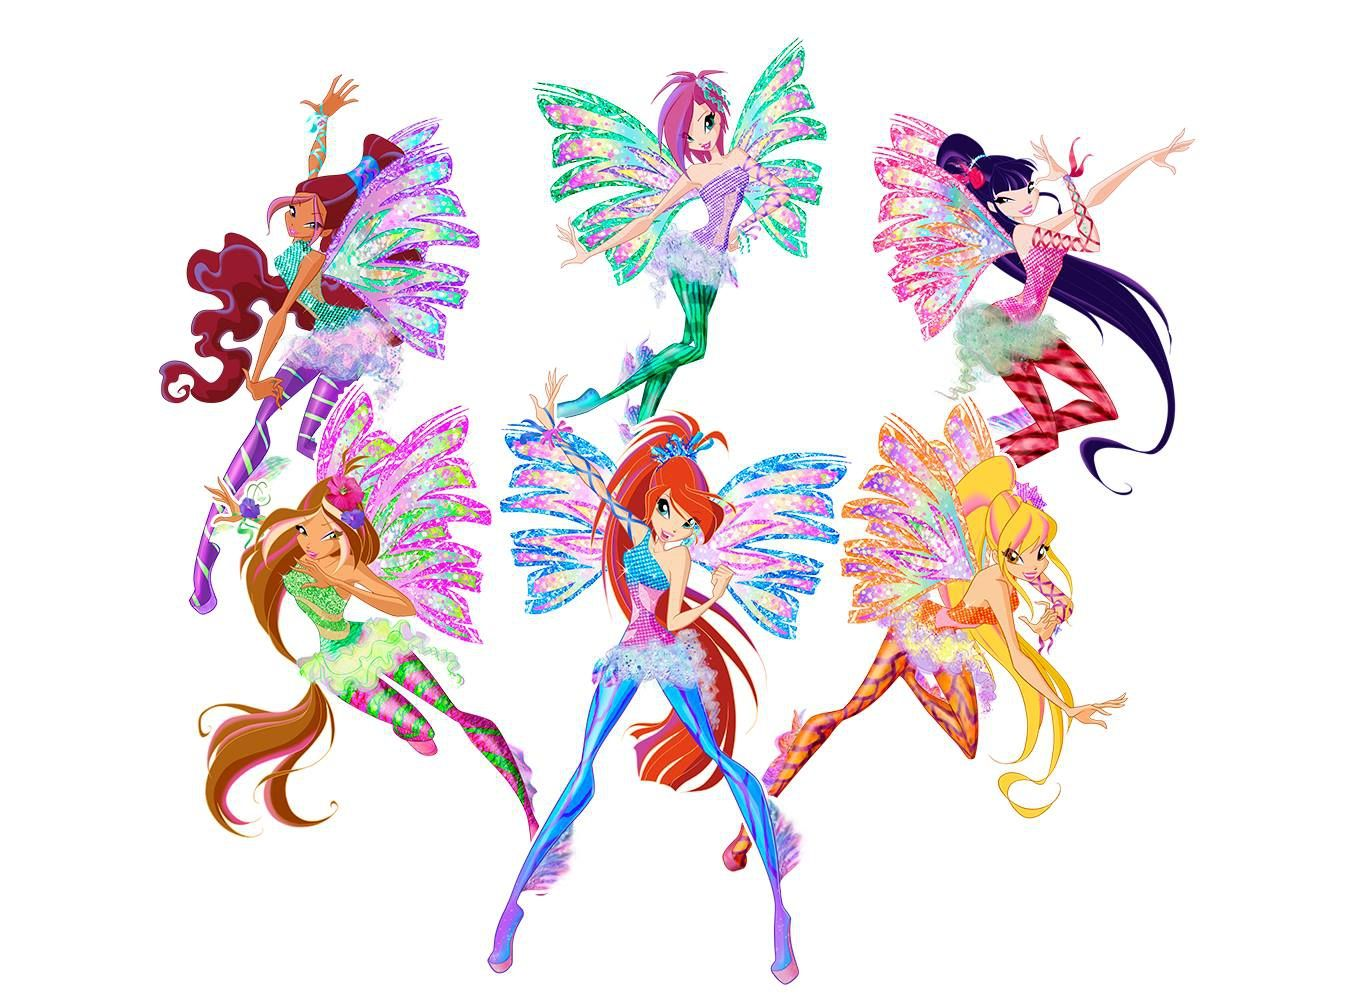 winx-club-saison-5-images-sirenix-5eme-poses_4298217-XL ... Блум Винкс Сиреникс